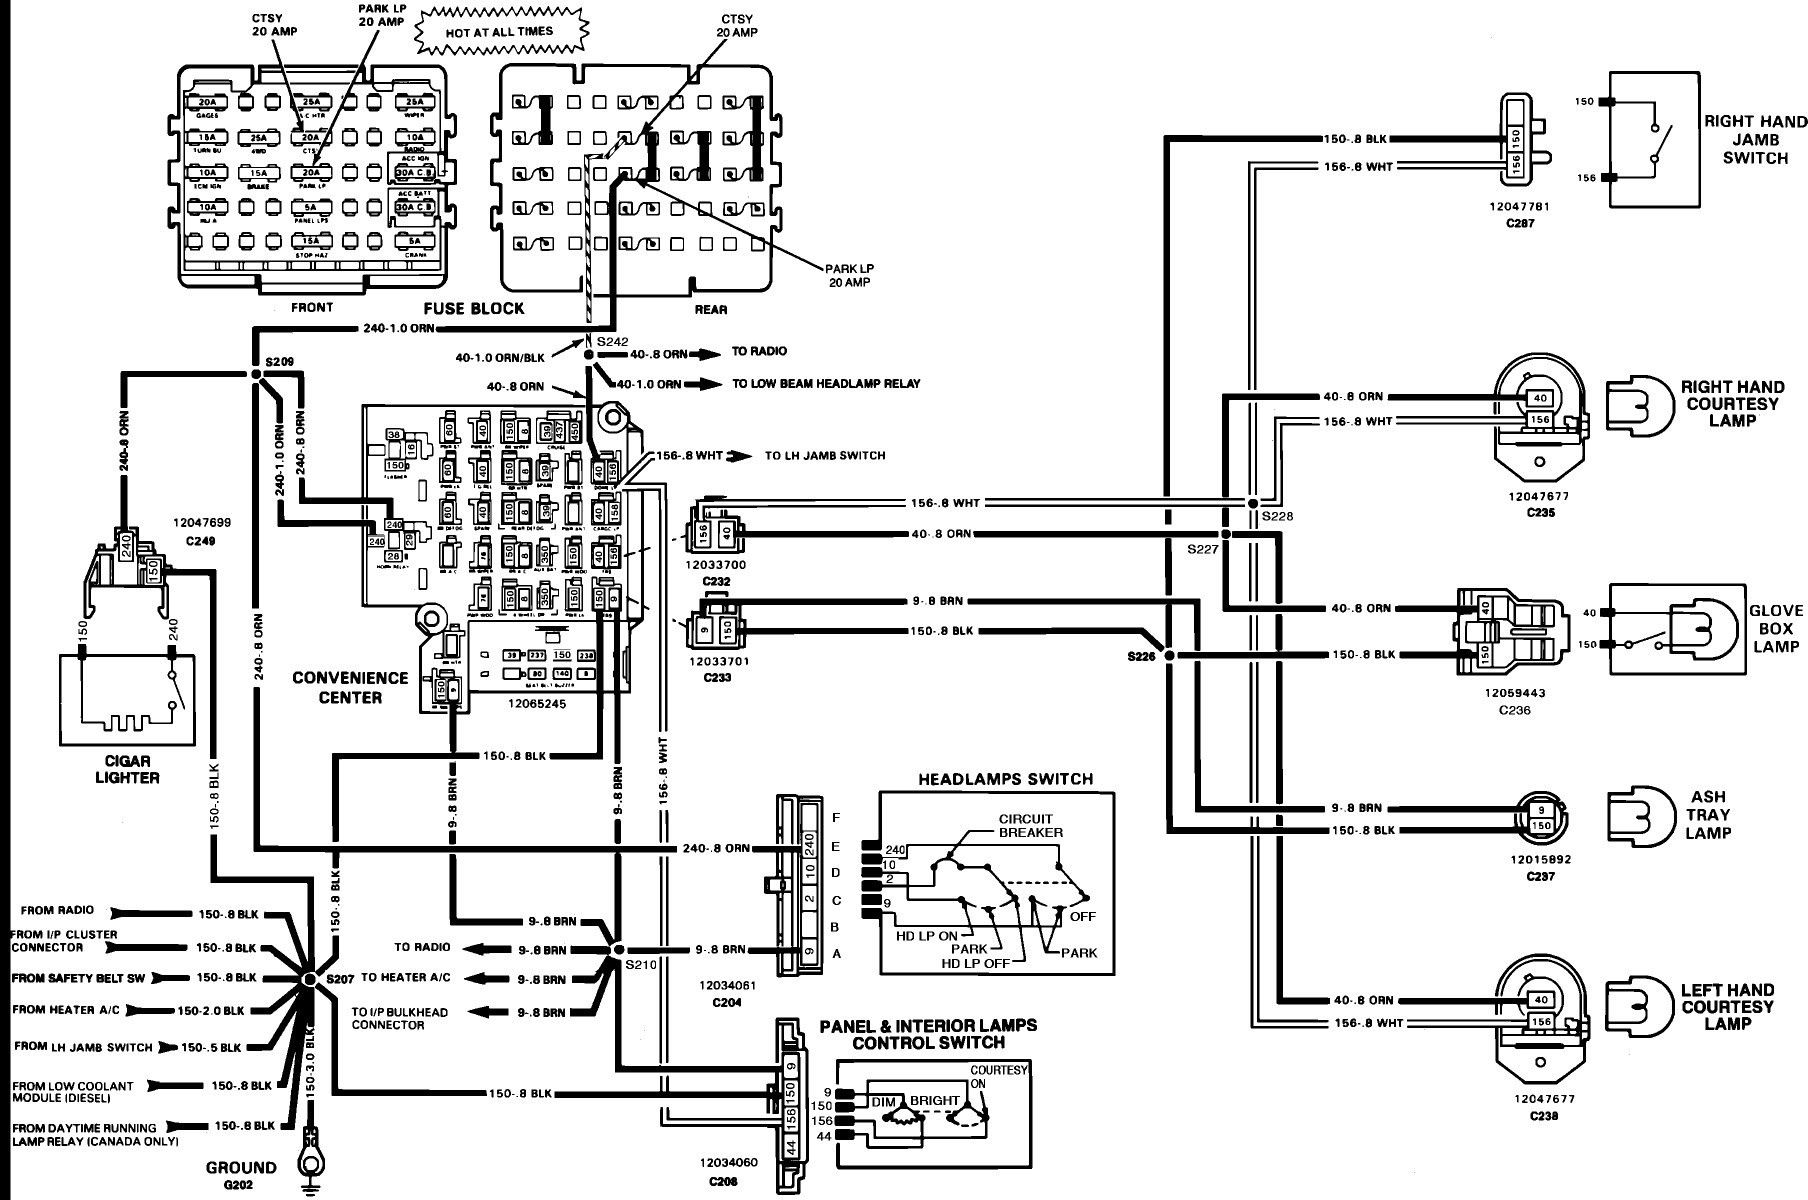 1993 Chevy S10 Wiring Diagram Chevy S10 Chevy Trucks Electrical Diagram